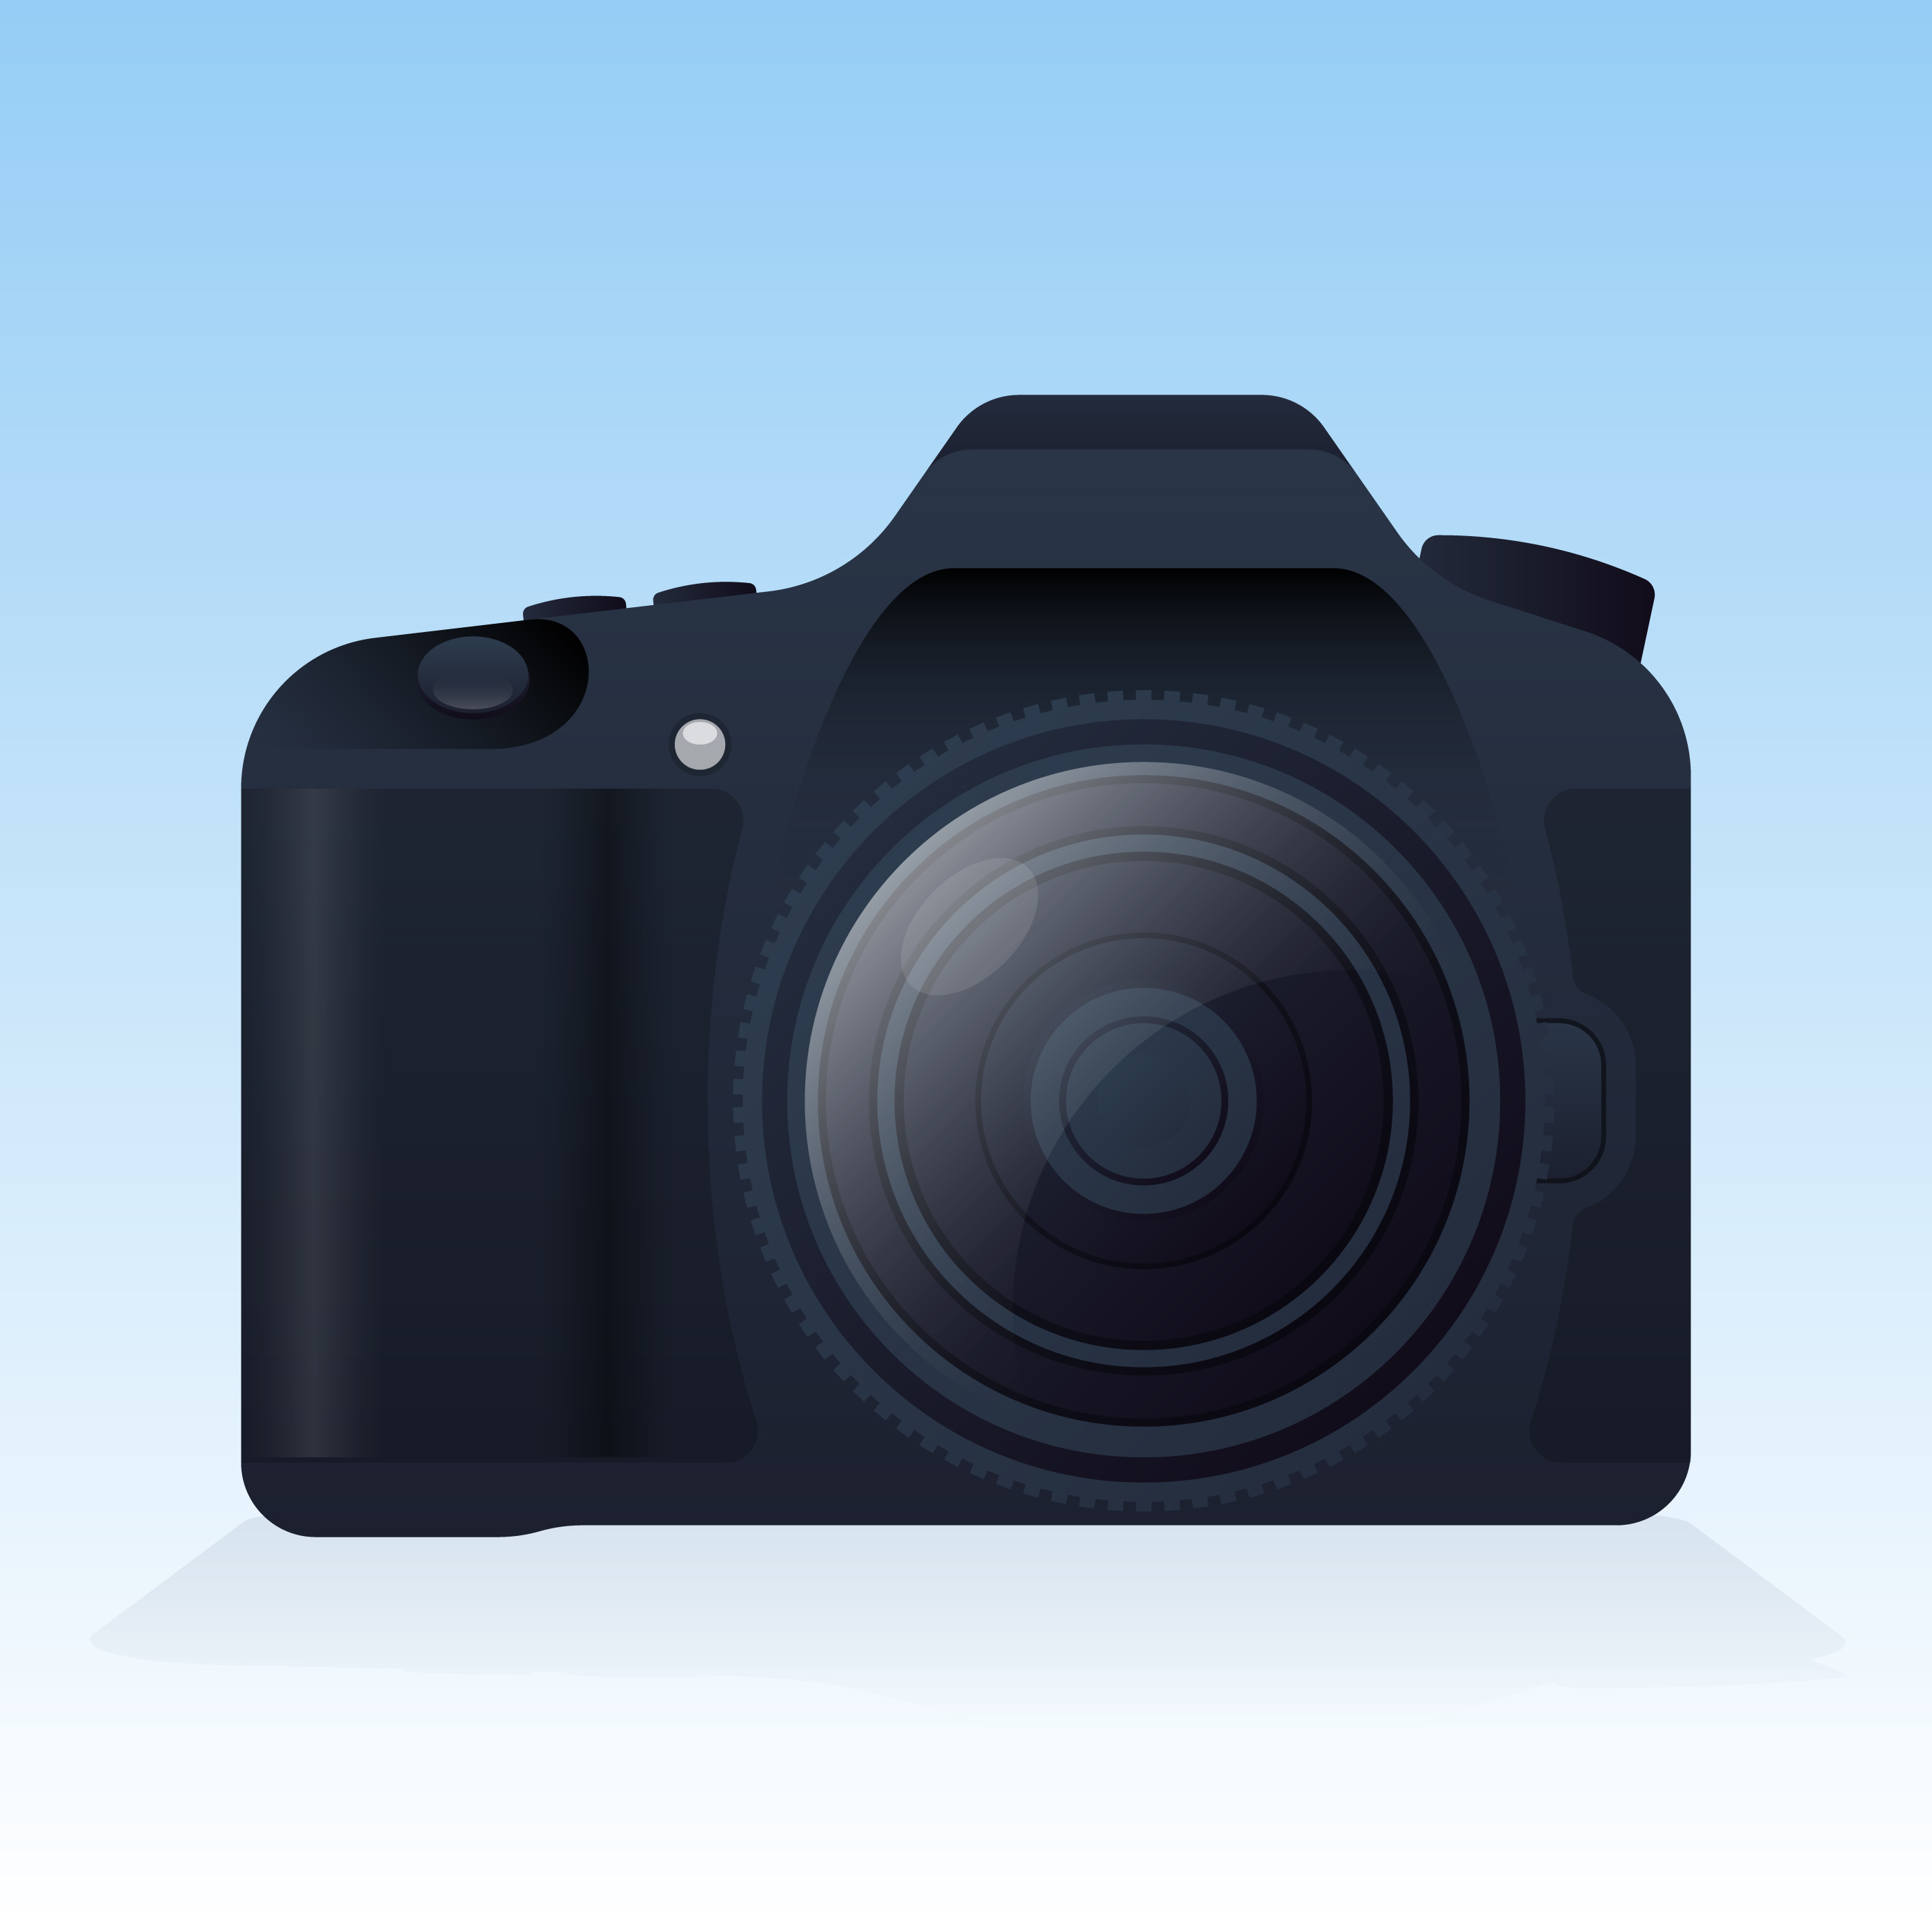 Realistic Digital Camera Illustration On Background